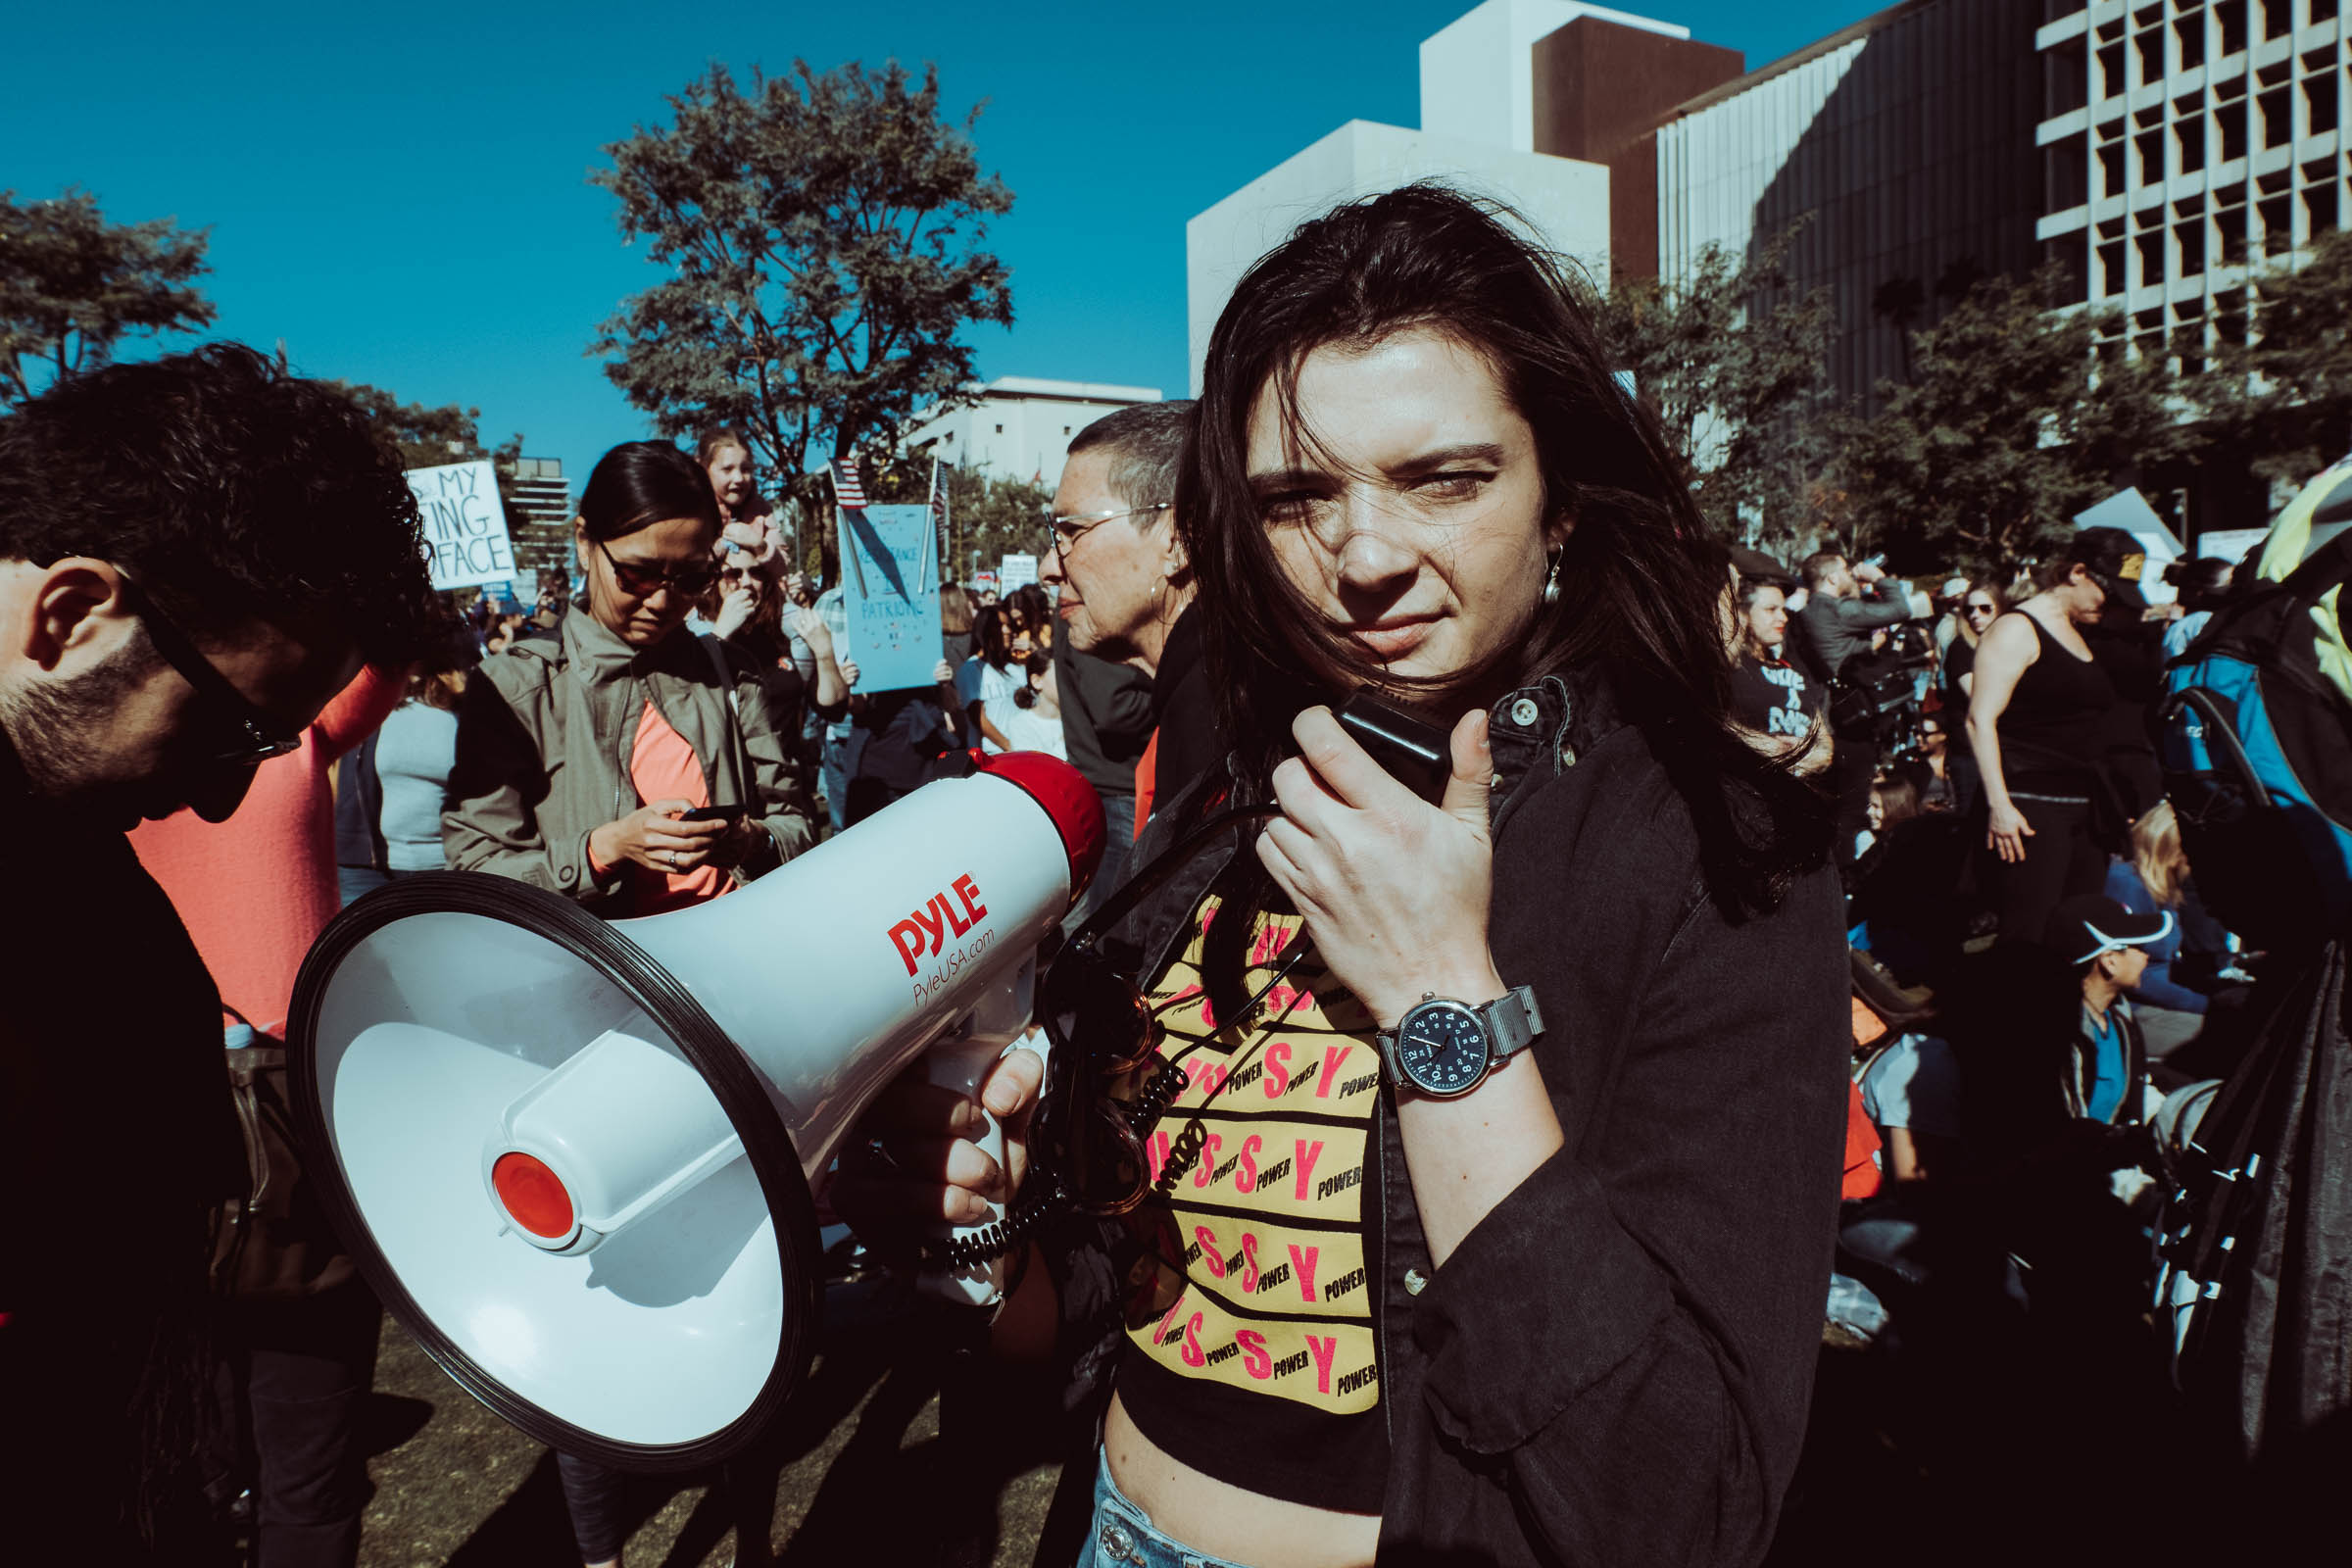 Chacon Images_WomensMarch_Web-30.jpg